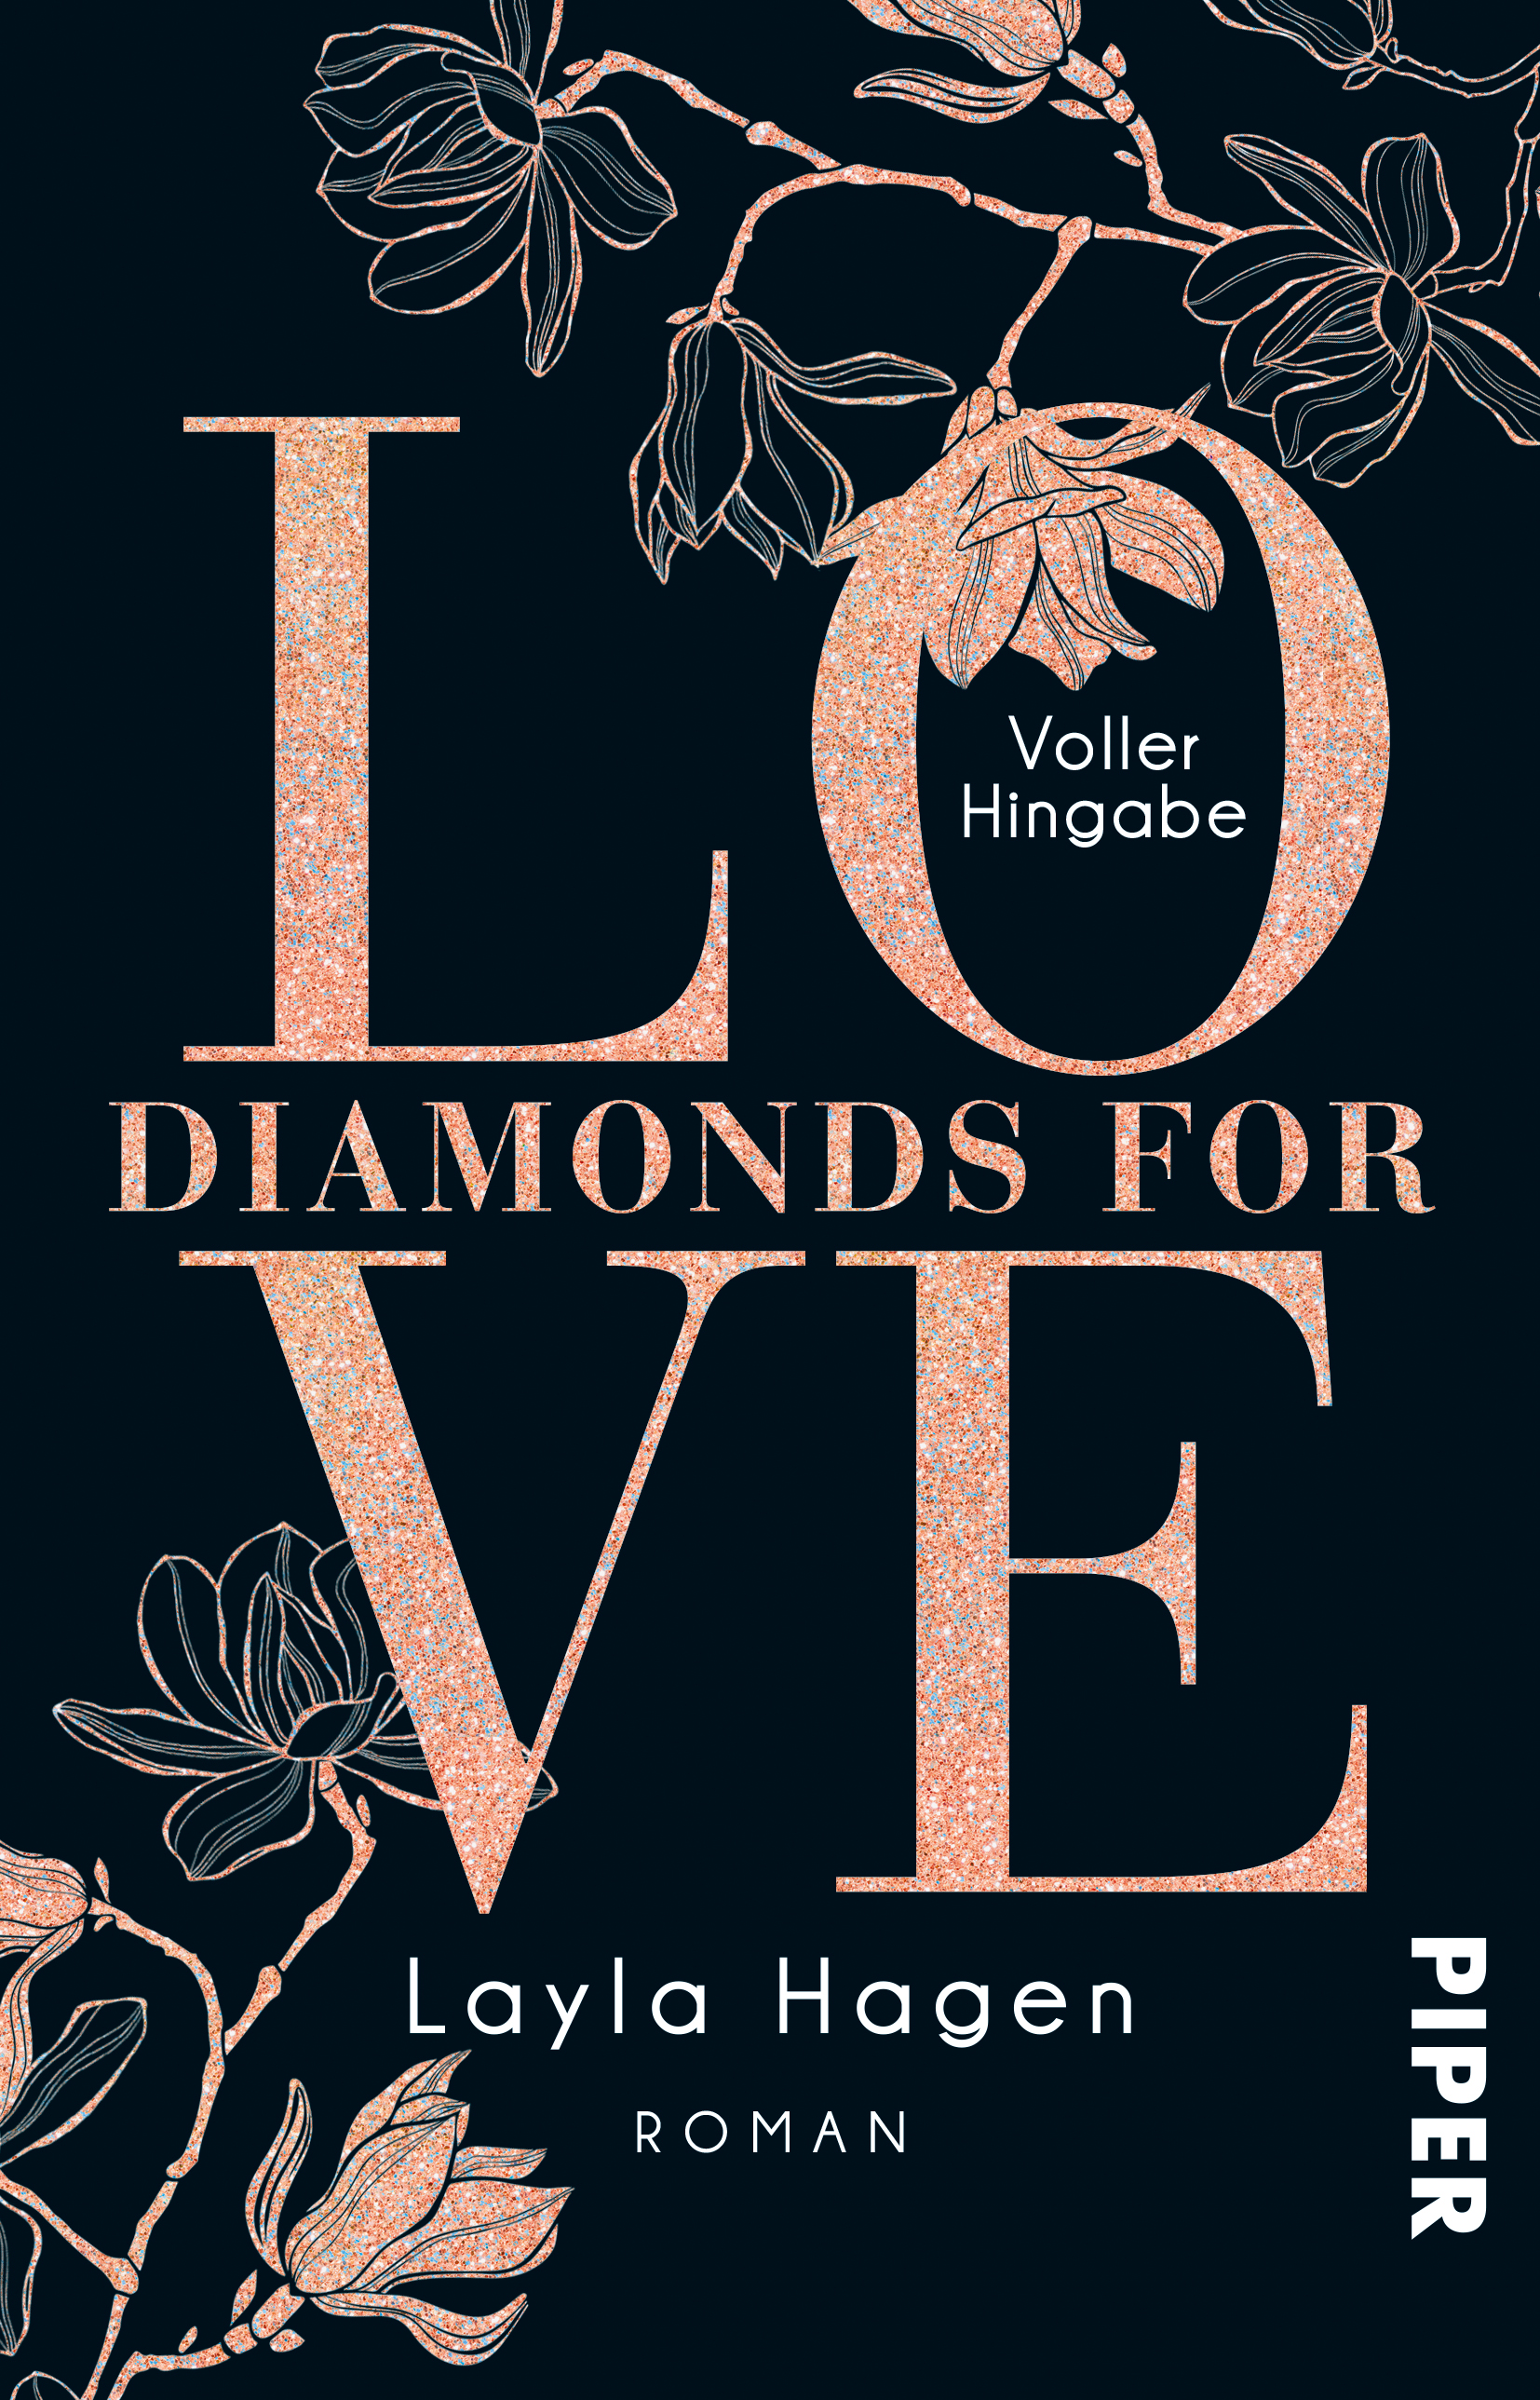 https://www.piper.de/buecher/diamonds-for-love-voller-hingabe-isbn-978-3-492-31161-8